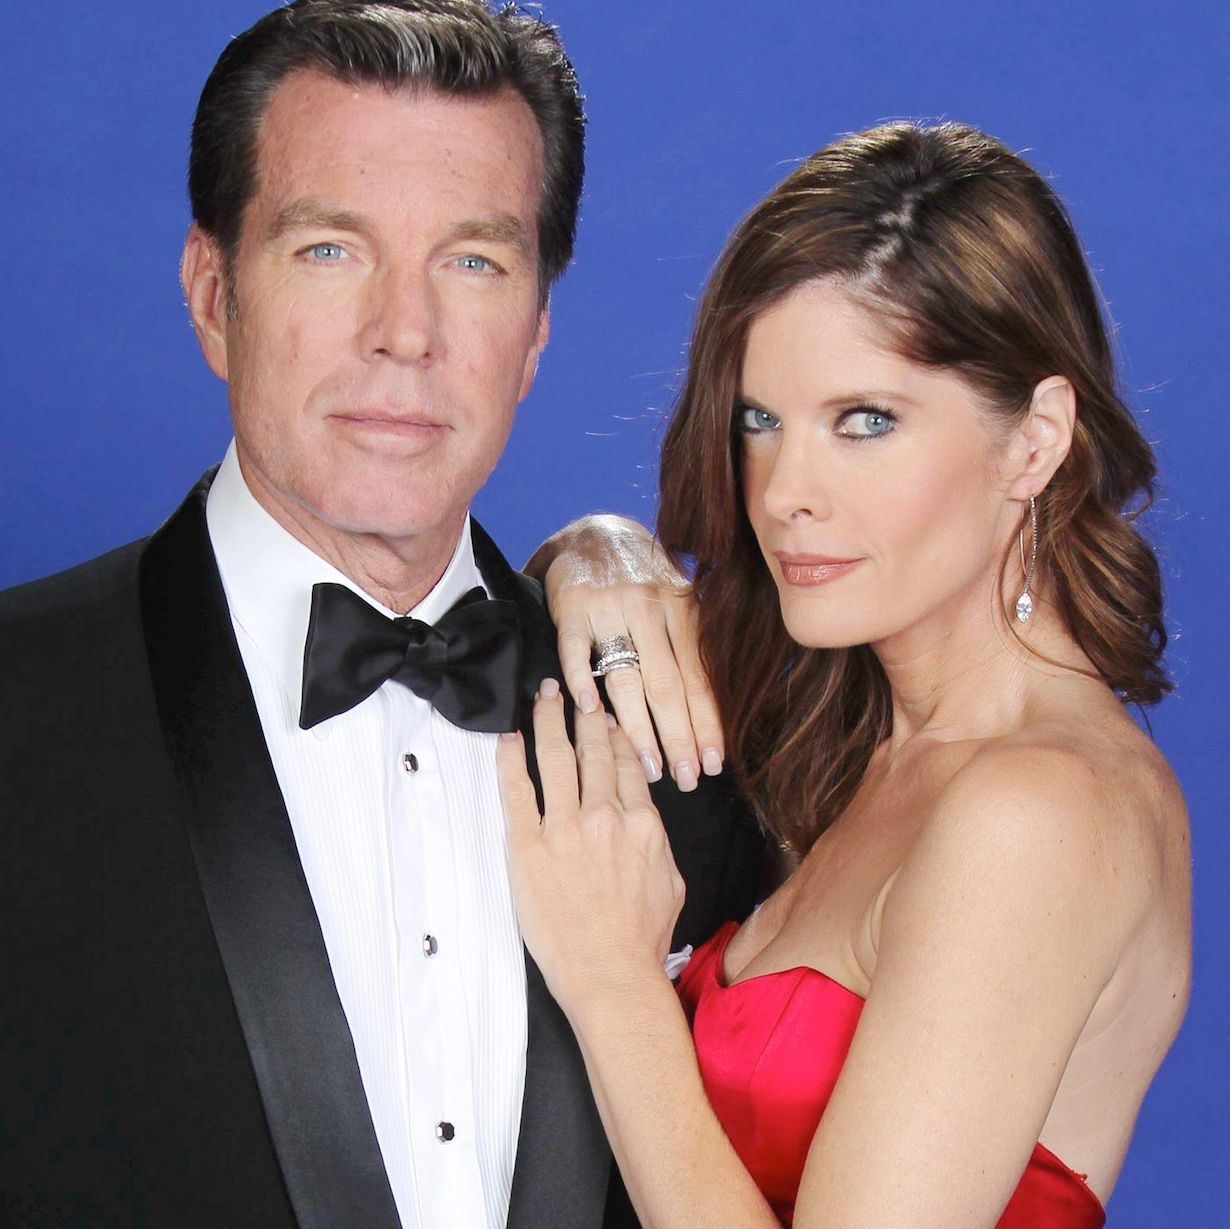 """jack phyllis unsized Peter Bergman, Michelle Stafford""""The Young and the Restless"""" Set 40th Anniversary Cast Photo Gallery ShootCBS television CityLos Angeles12/10/12© John Paschal/jpistudios.com310-657-9661"""